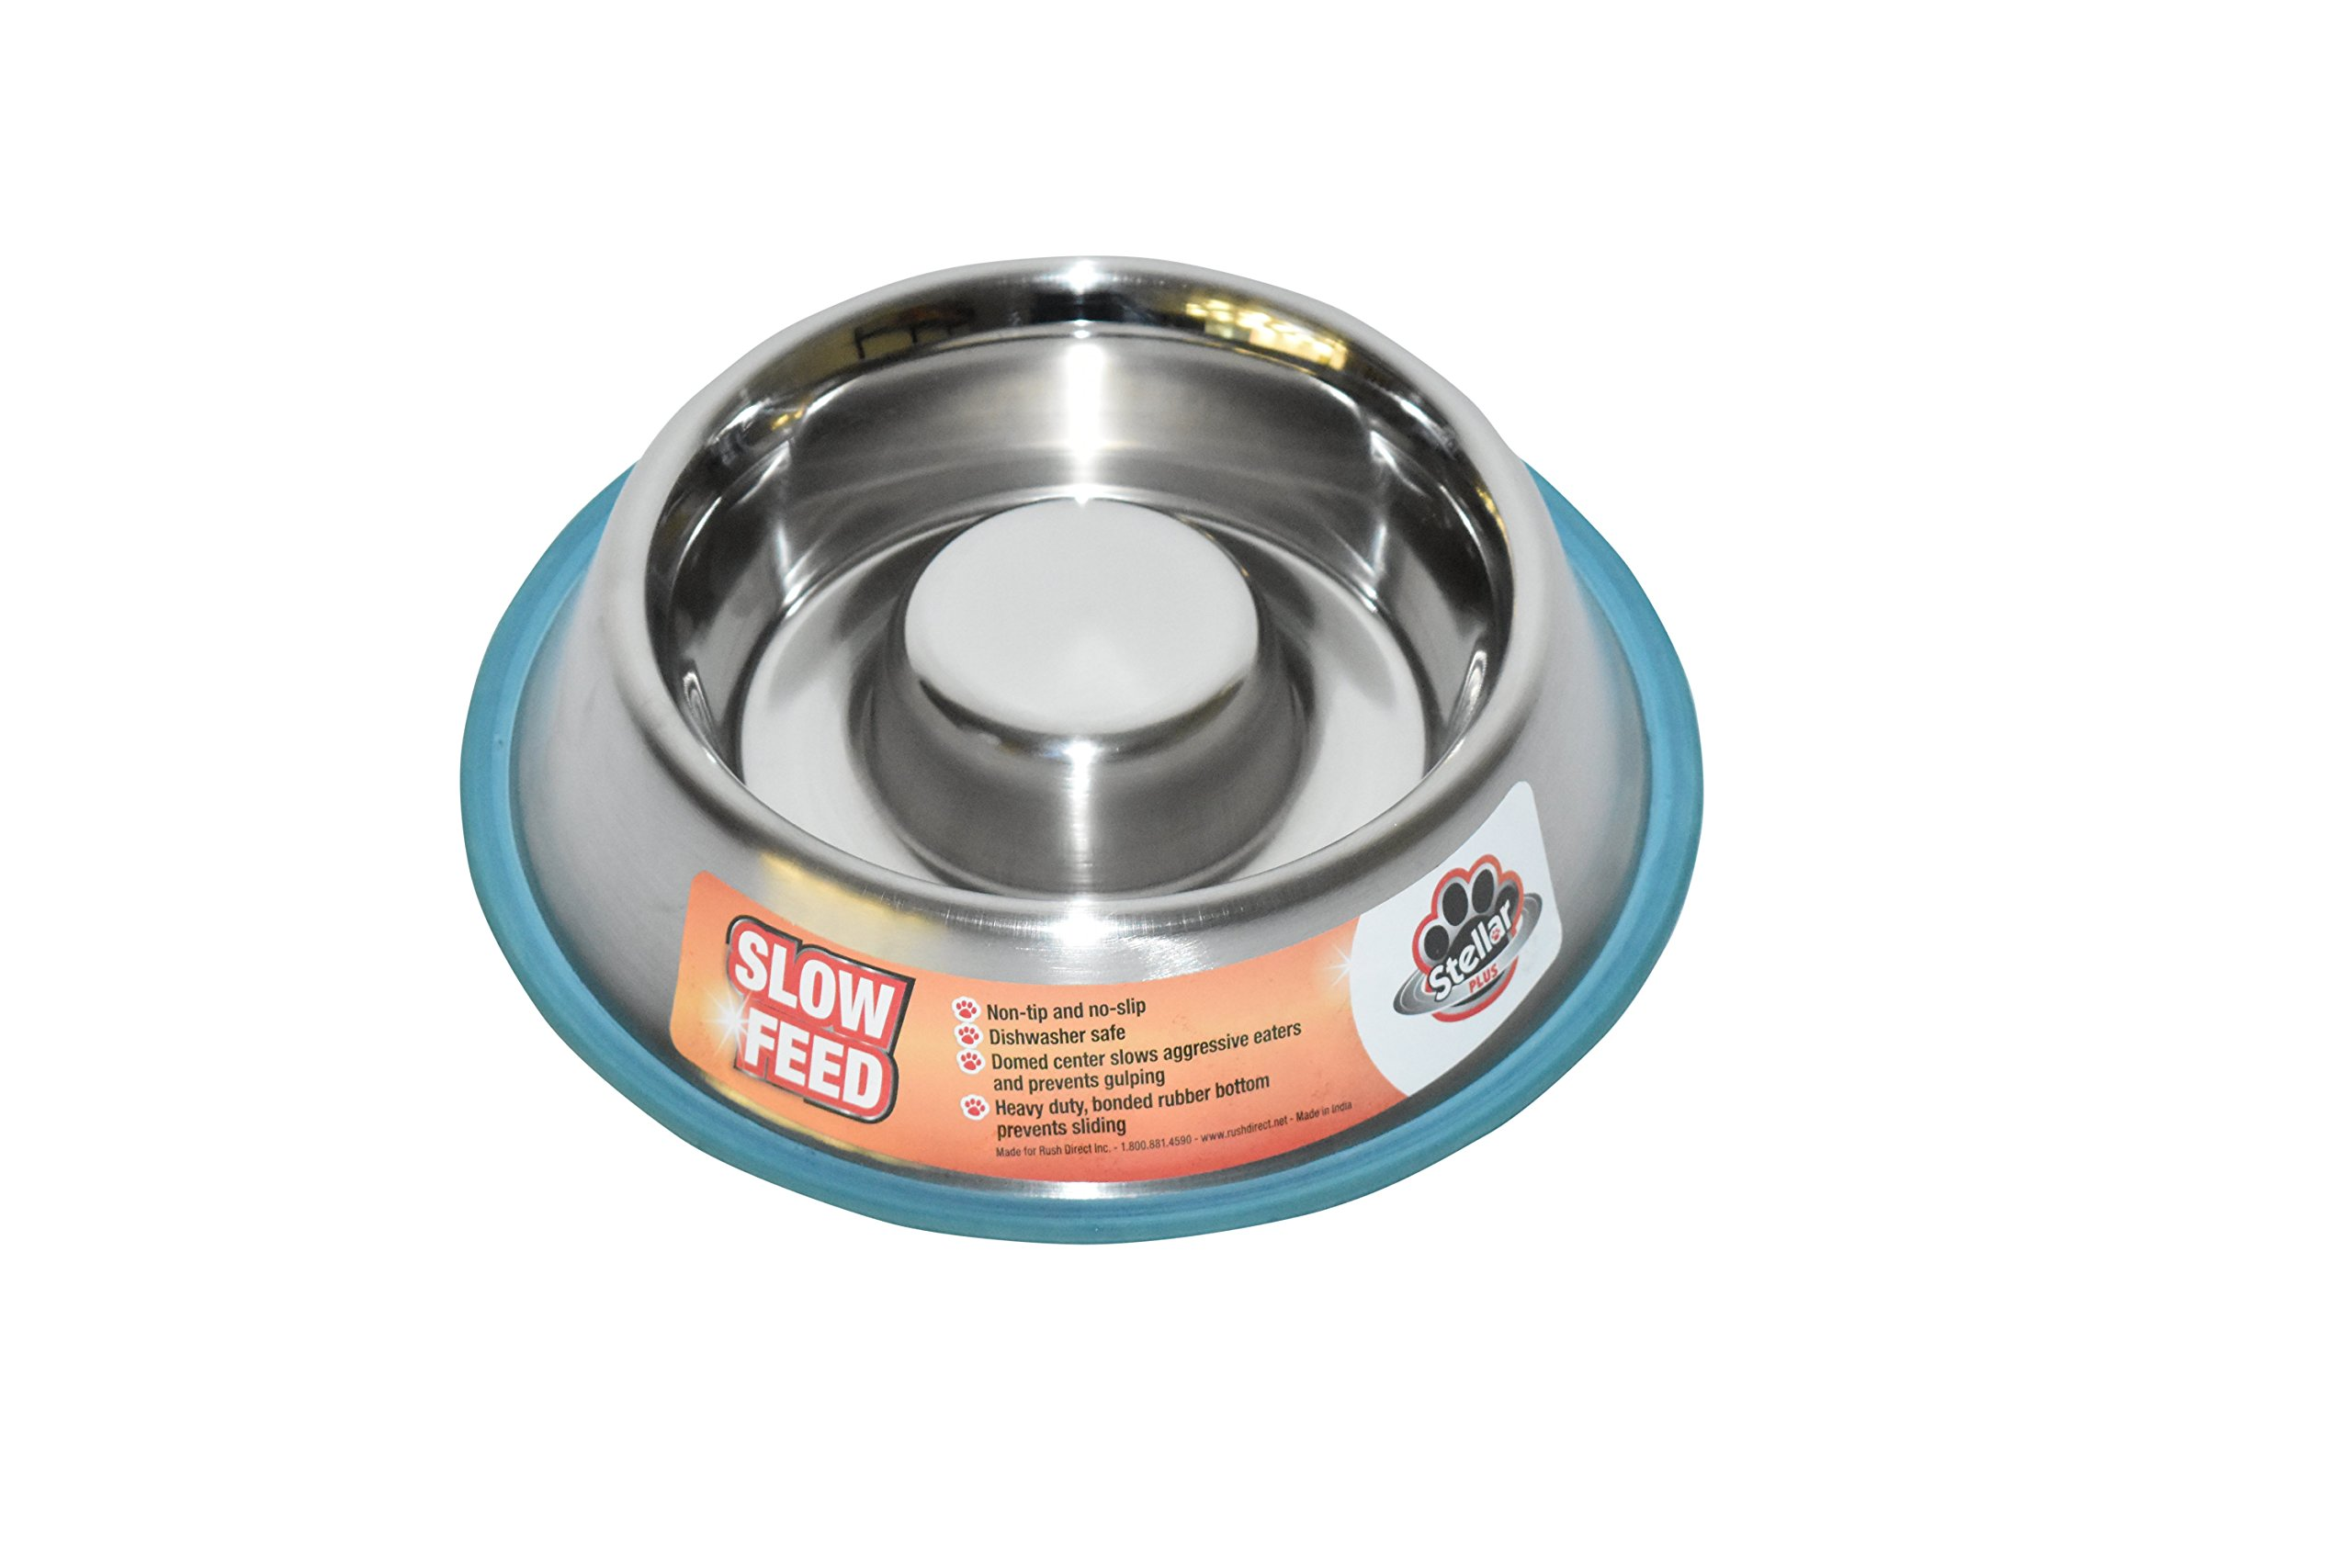 Stellar Bowls Health Care Slow Feed Non Tip Anti Skid Dish with 100% Silicon Bonded Rubber Ring, 25 oz